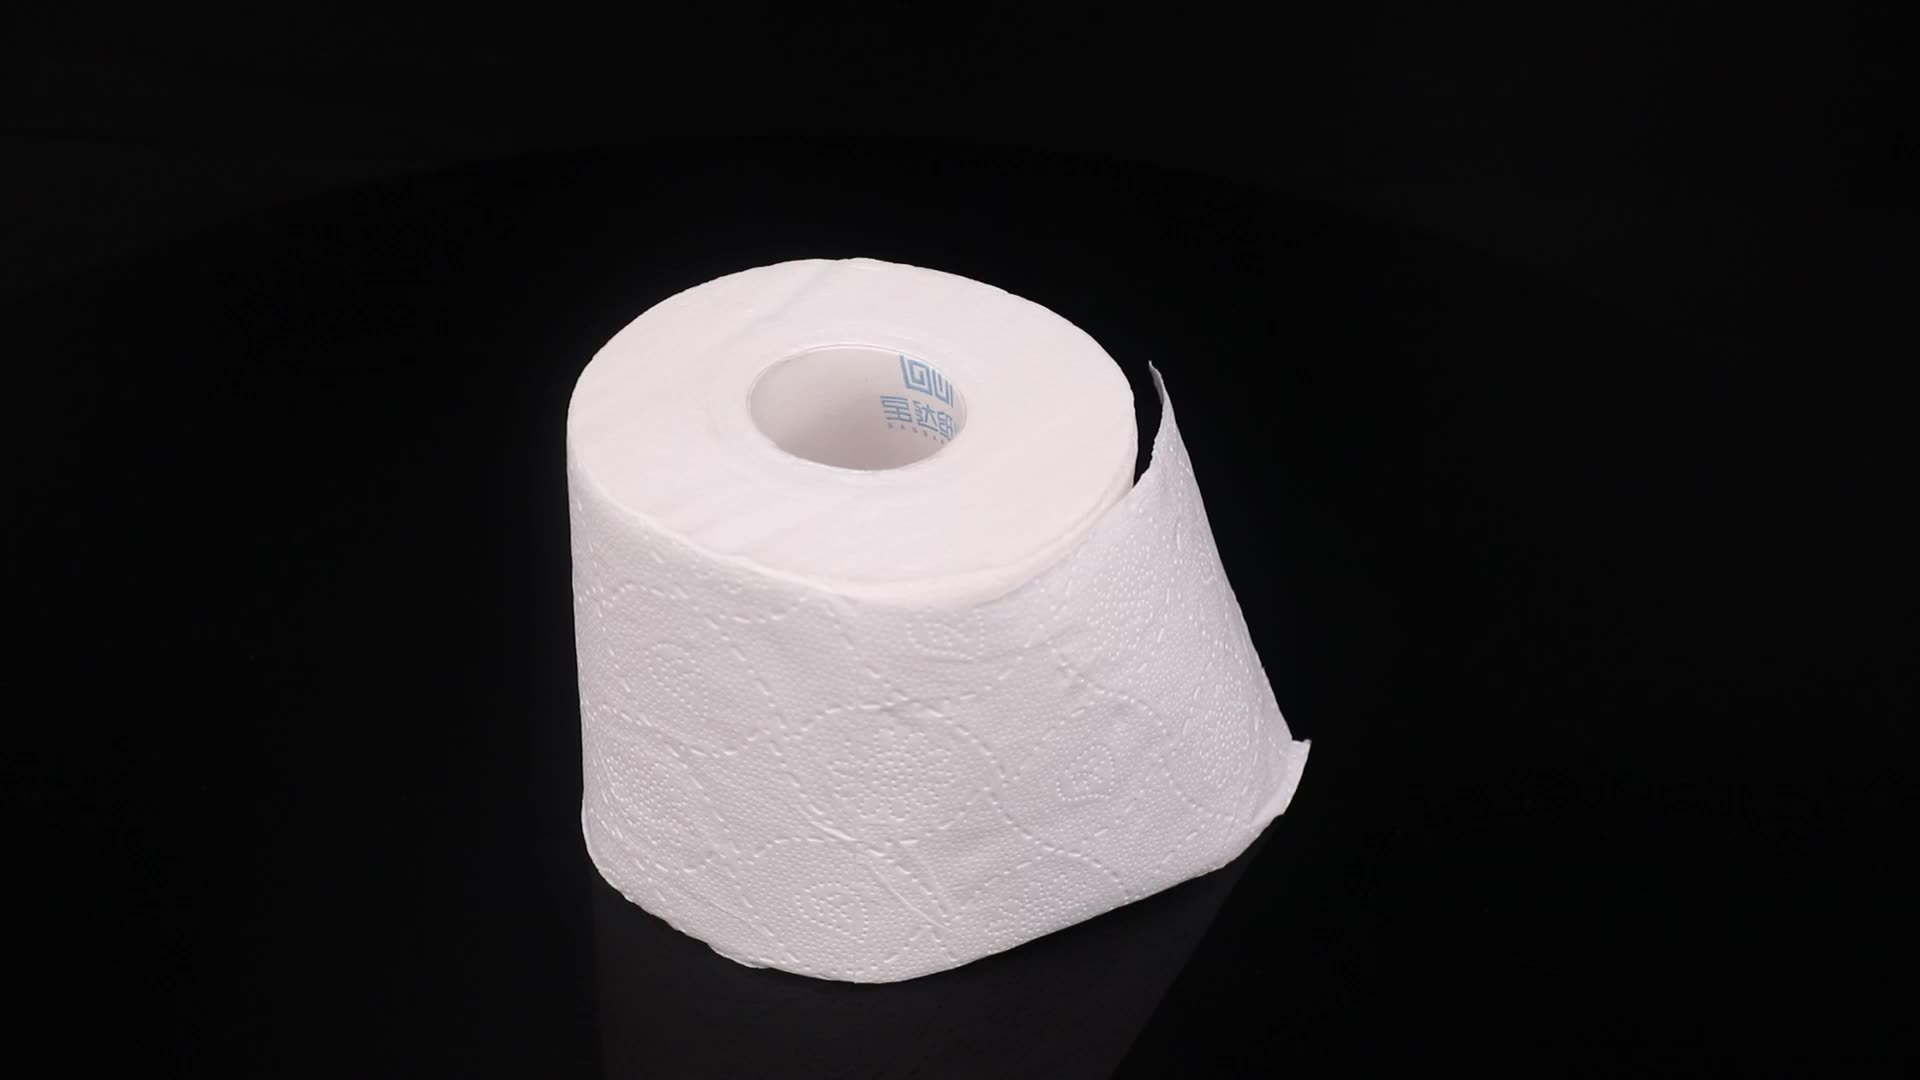 hot sale china hotel flower toilet tissue paper toilet roll bamboo toilet paper 3 ply 100% virgin wood pulp